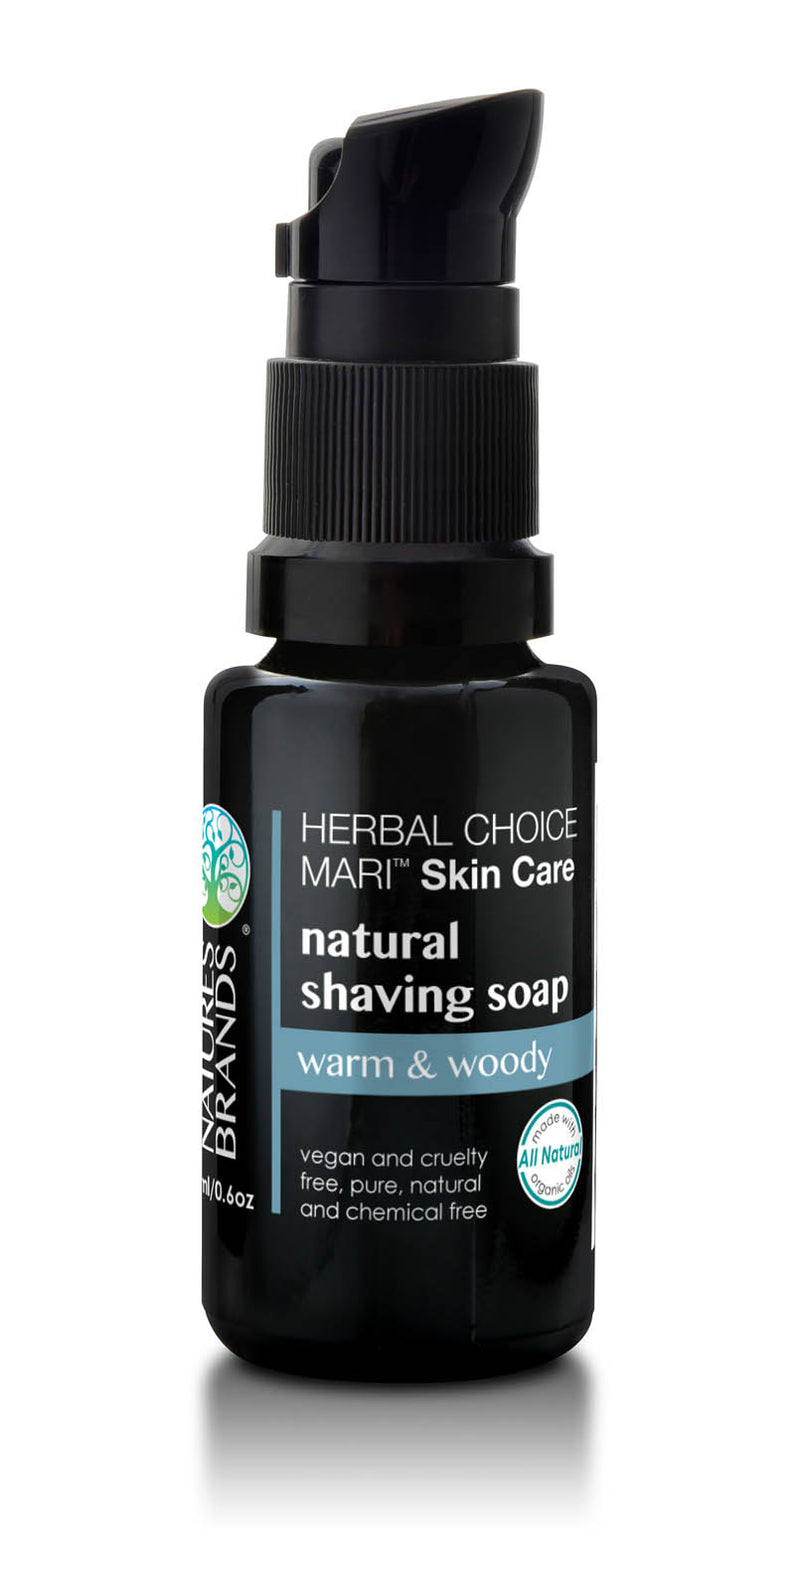 Herbal Choice Mari Natural Shaving Soap; Made with Organic - Herbal Choice Mari Natural Shaving Soap; Made with Organic - Herbal Choice Mari Natural Shaving Soap; Made with Organic